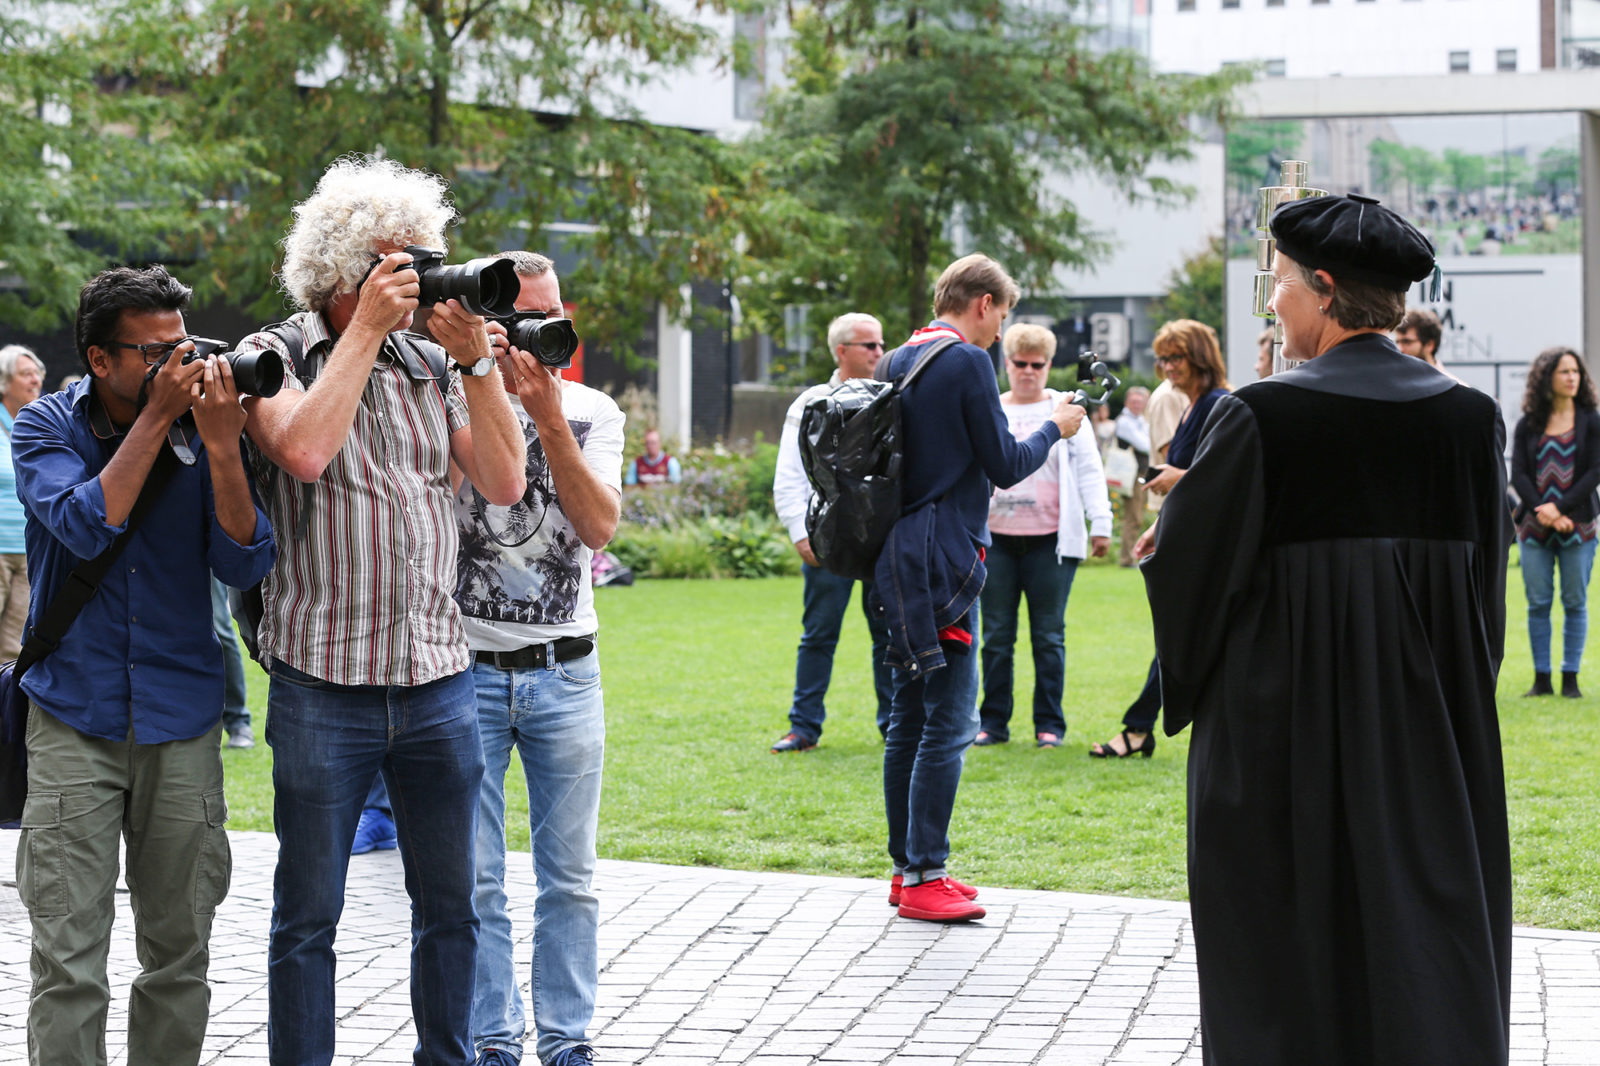 Opening-academisch-jaar-science-meets-city-sanne-van-der-most-10